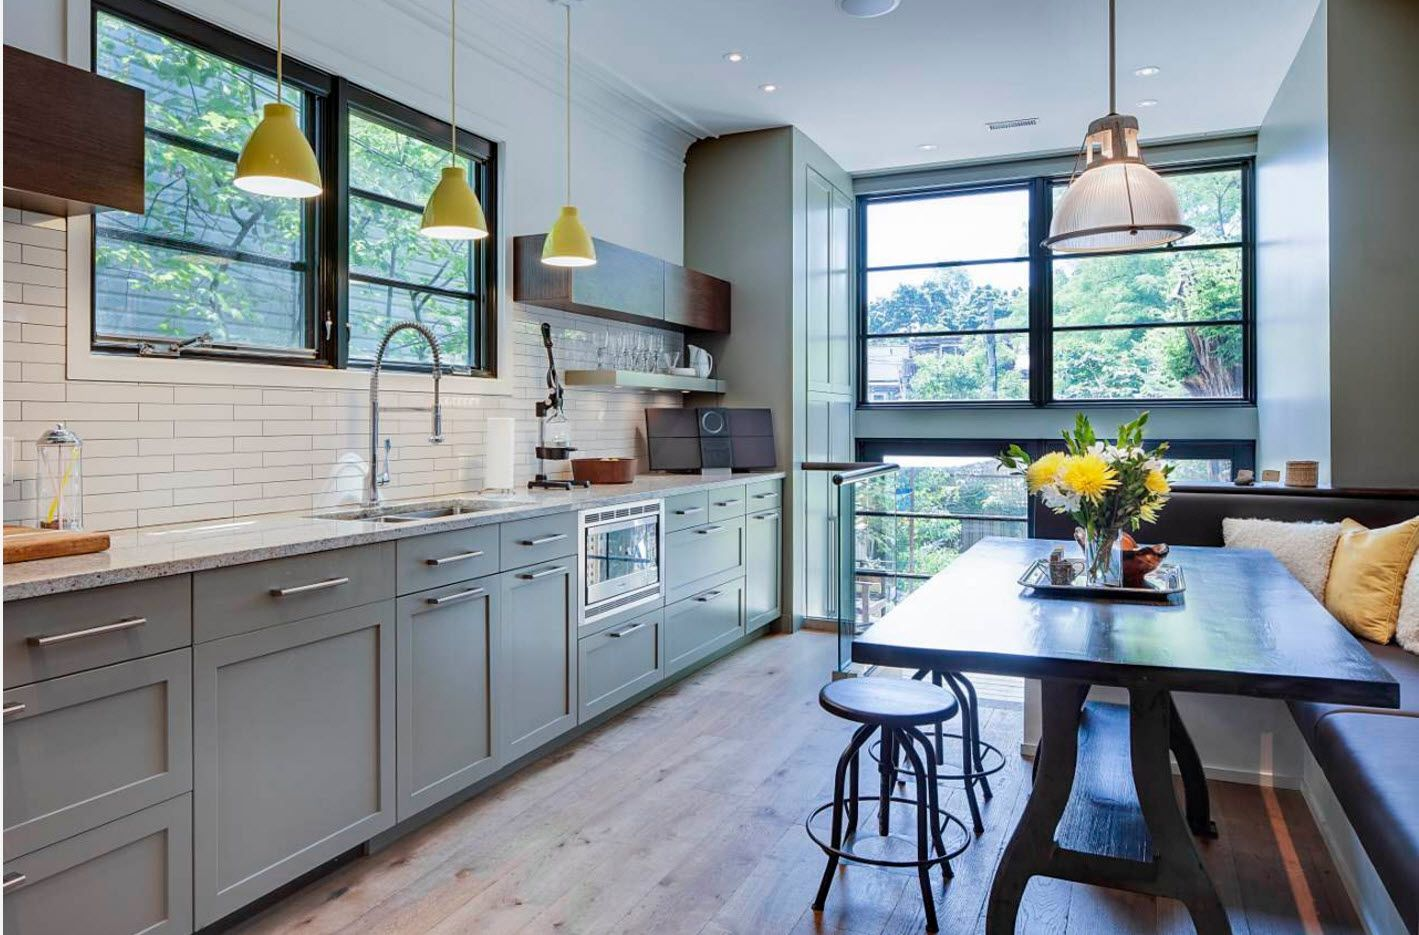 Contemporary and Classic interior alloy in the abundantly lit kitchen